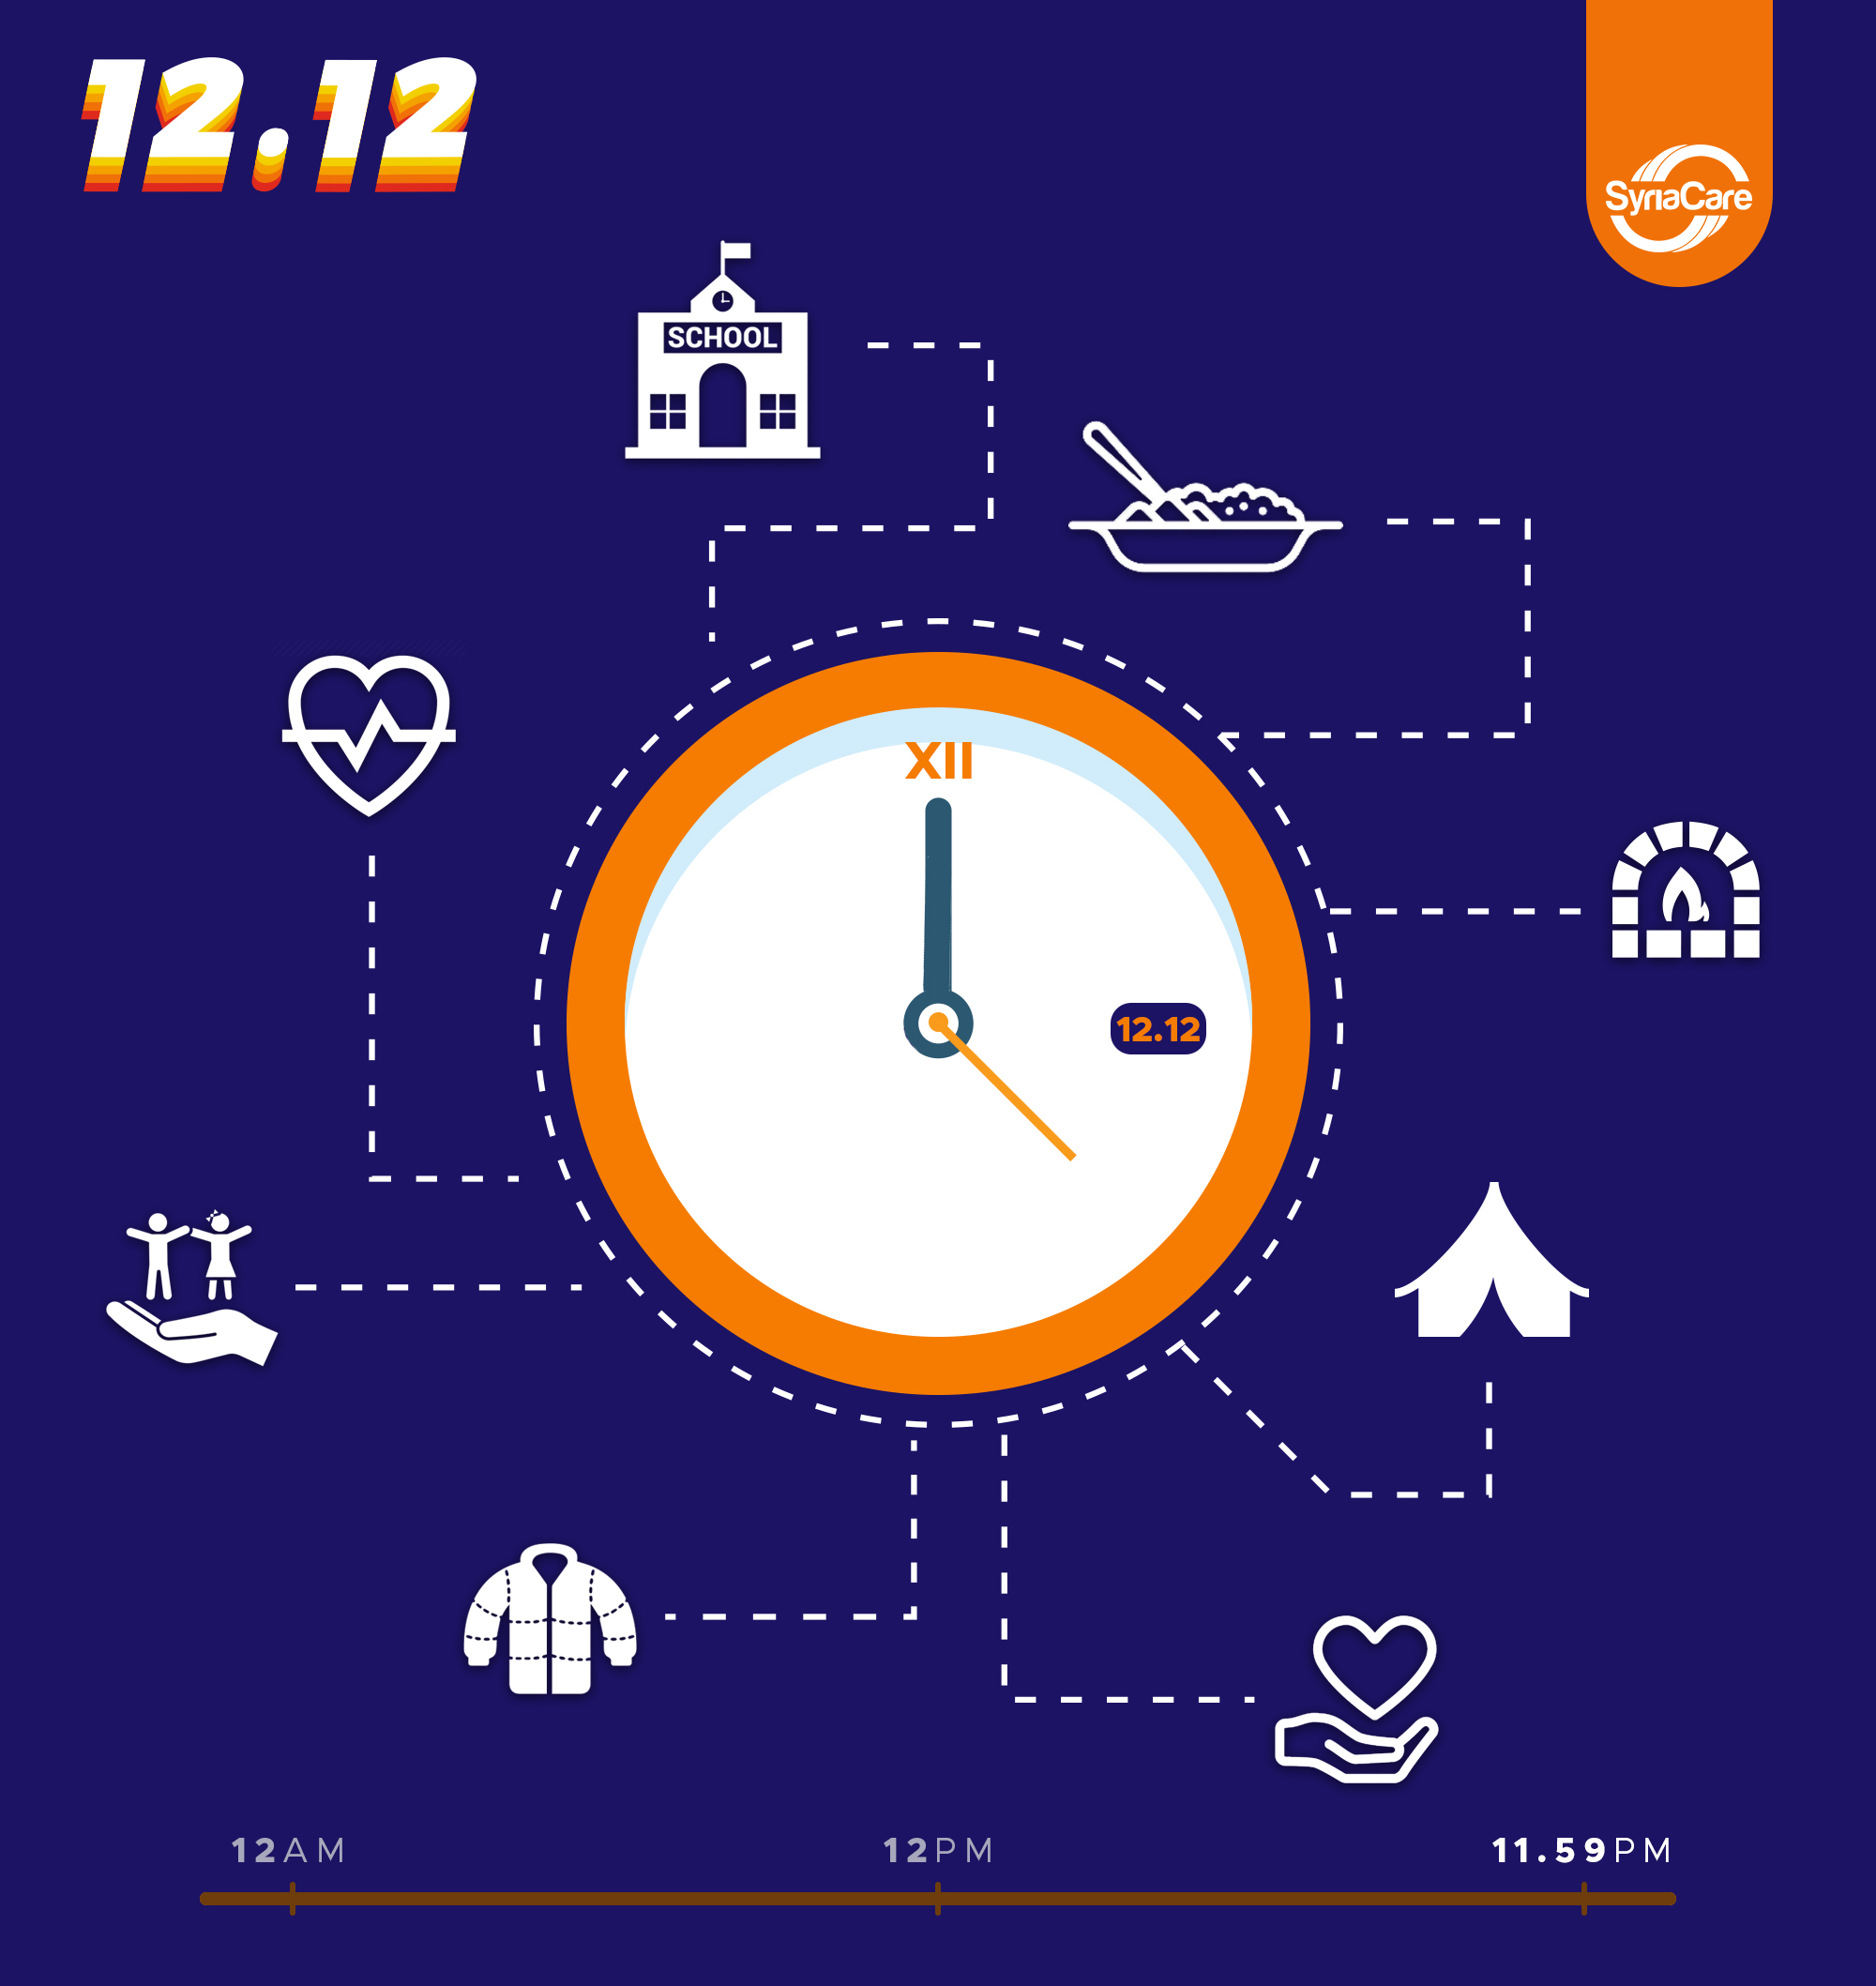 Mega Sedekah Day 12.12 clock 1159 pm